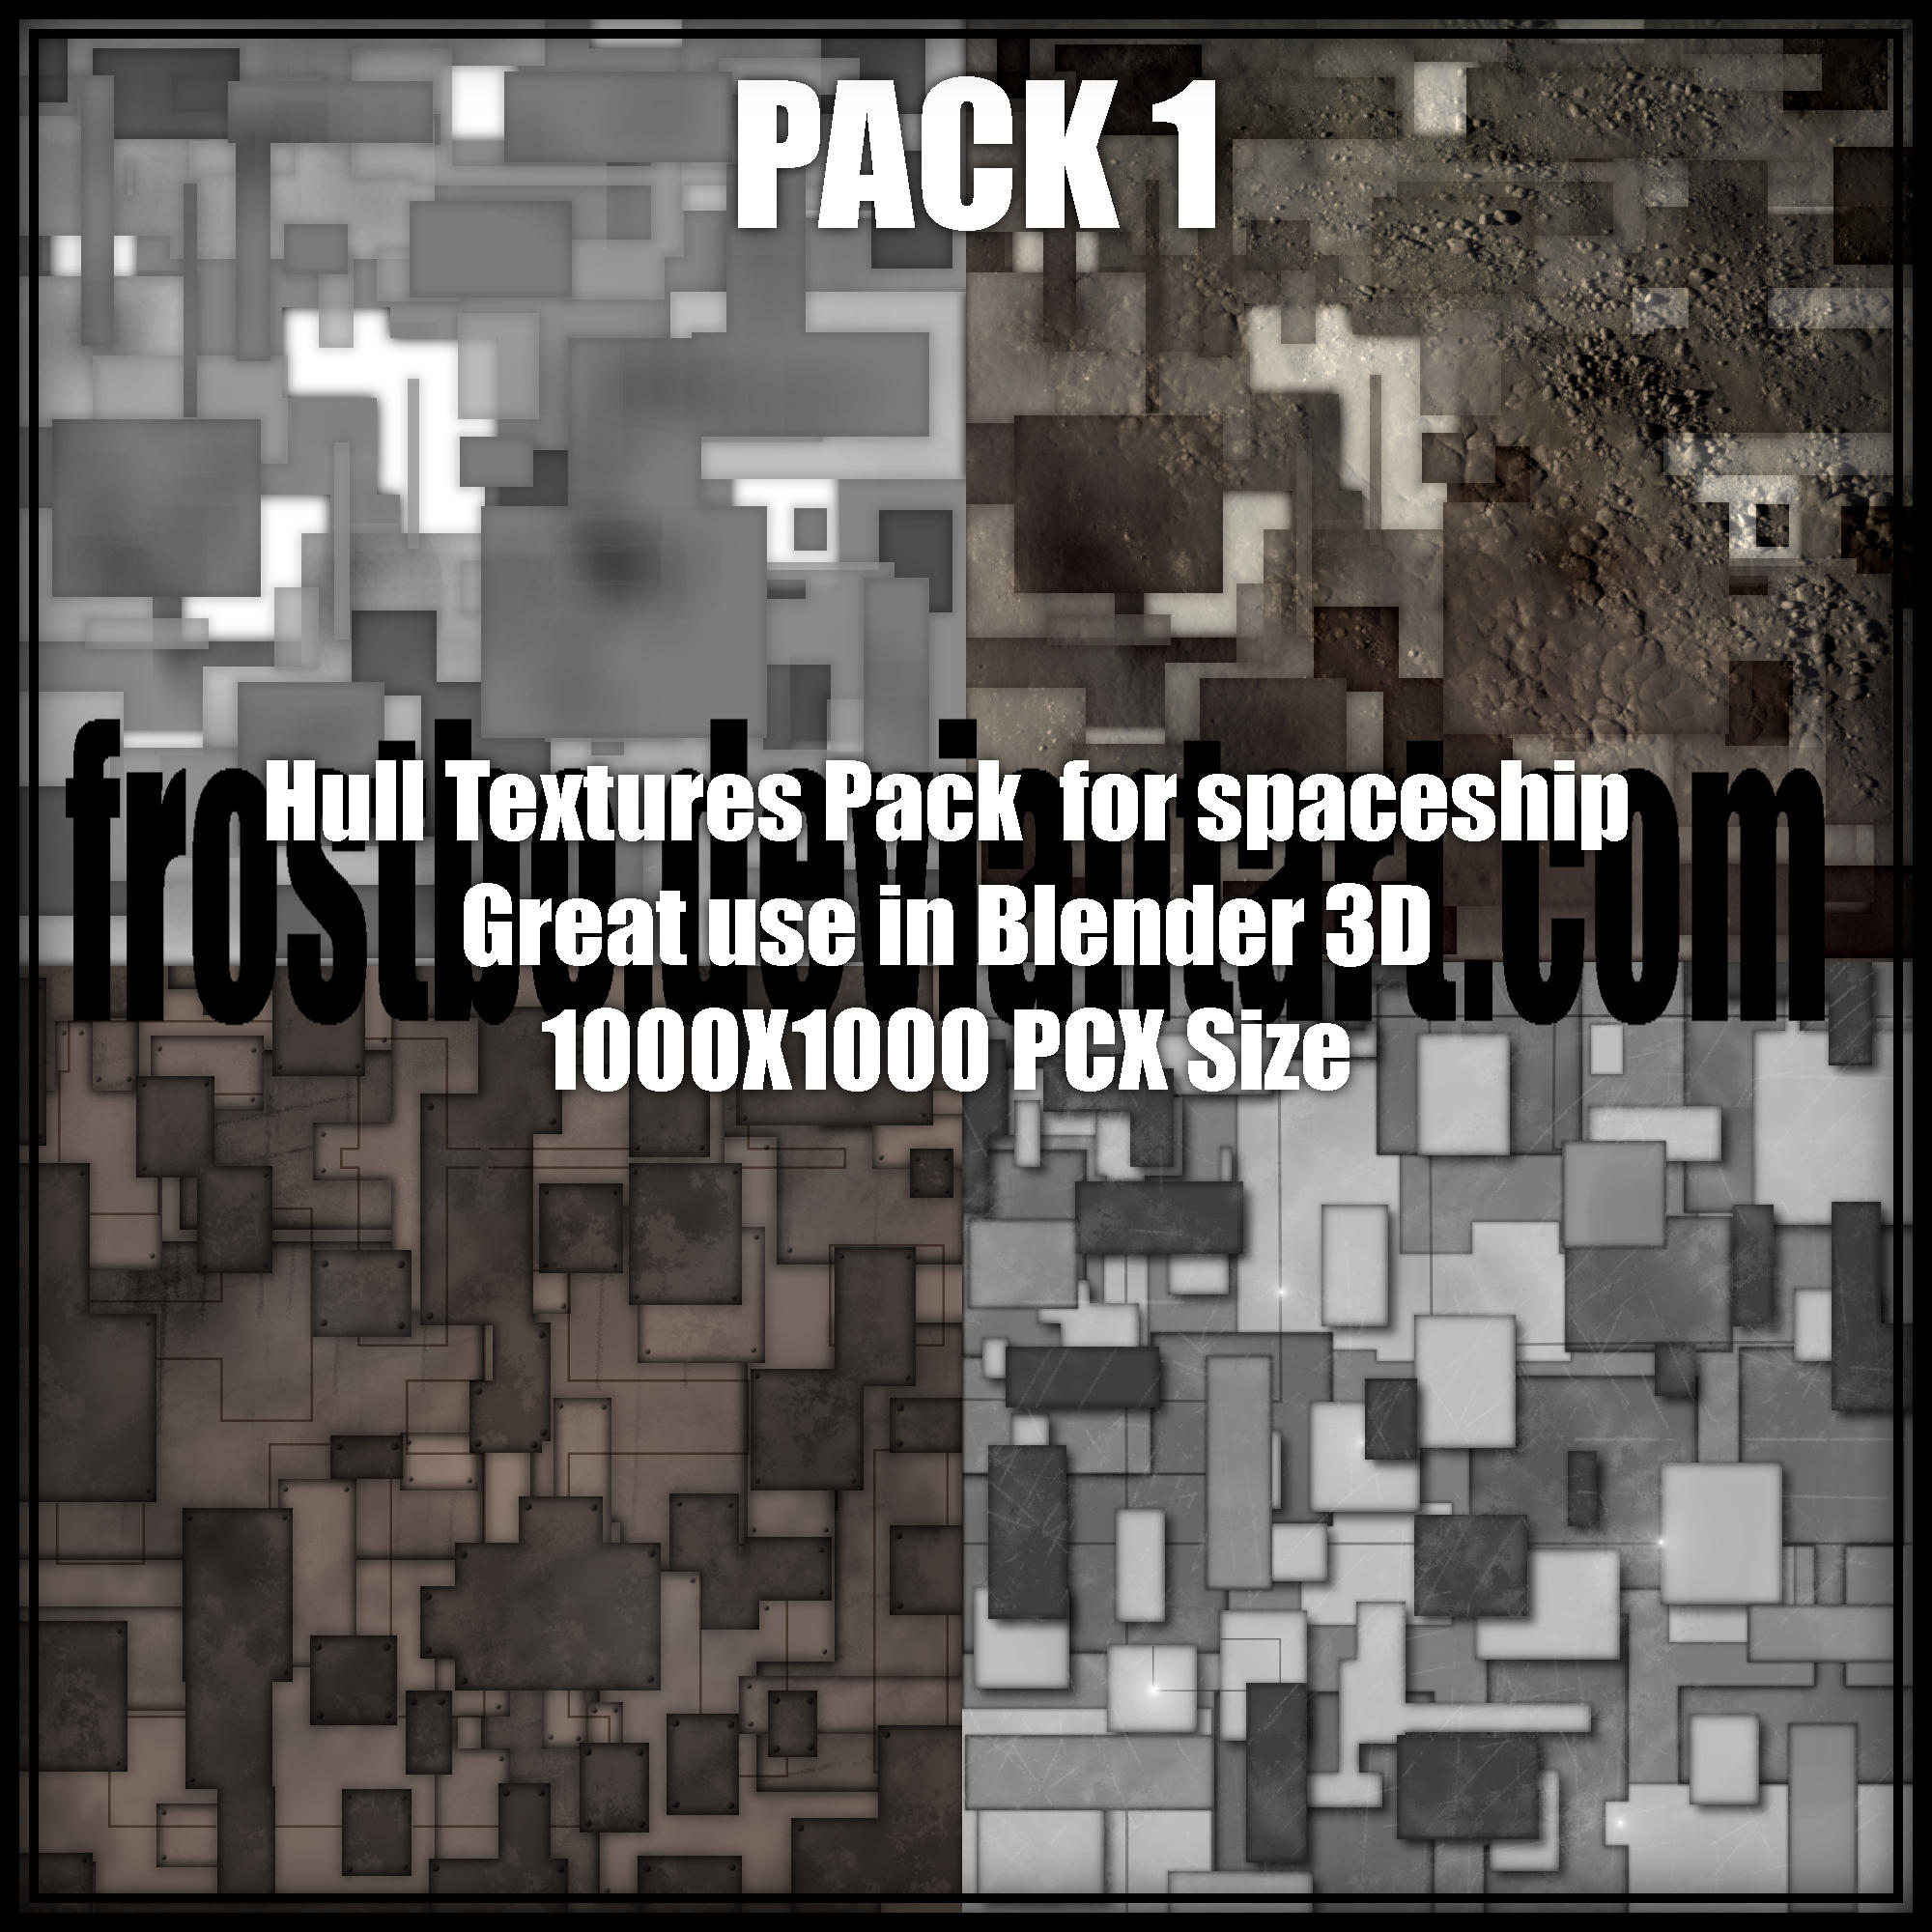 Design Wallpaper 3d Hull Textures Pack 1 For Spaceship By Frostbo On Deviantart